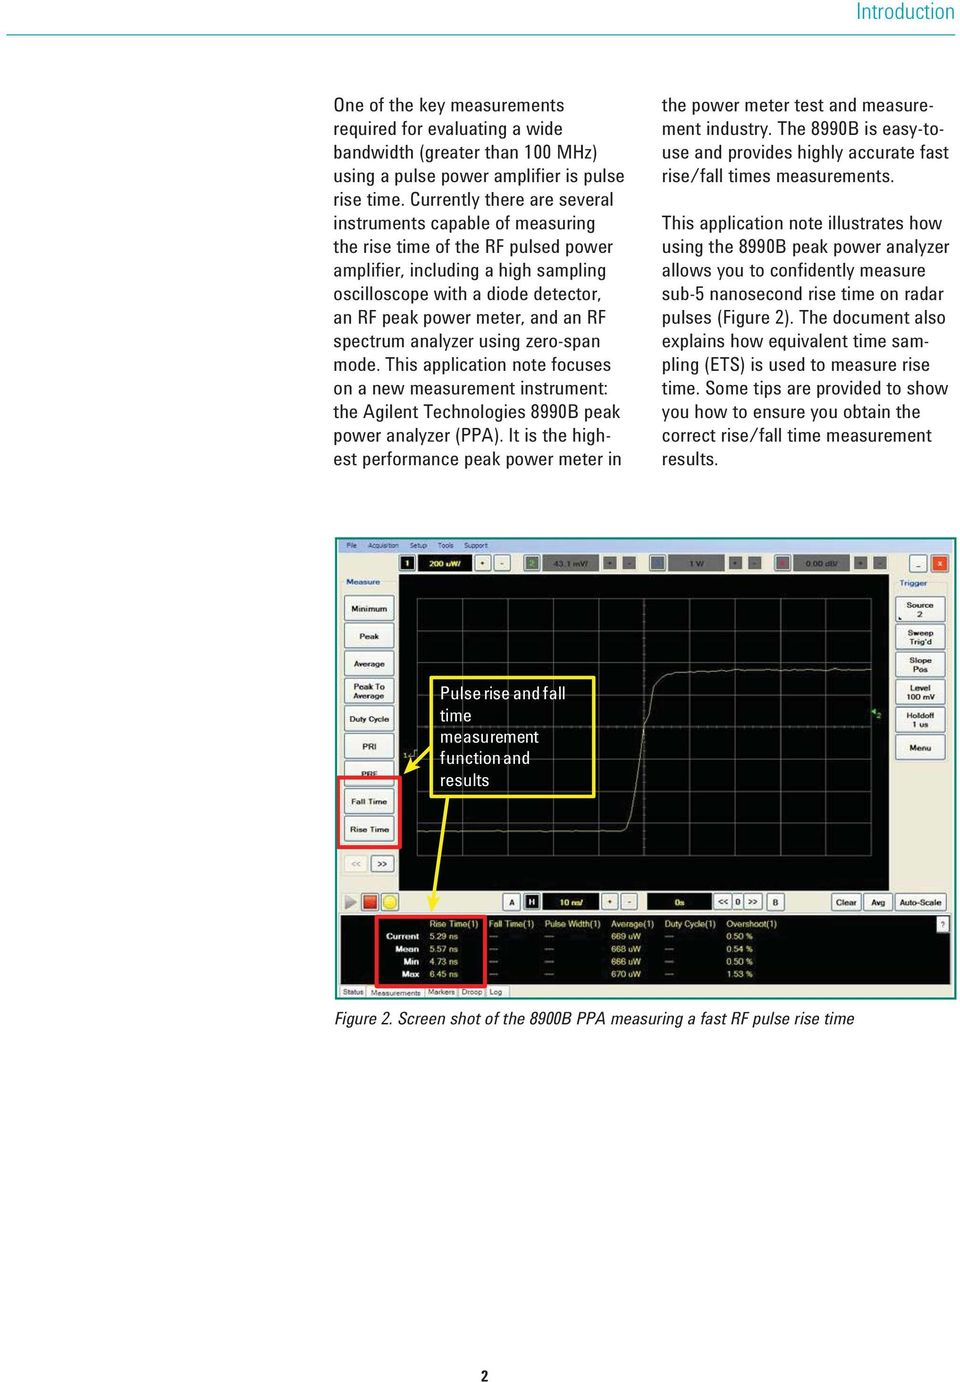 an RF spectrum analyzer using zero-span mode. This application note focuses on a new measurement instrument: the Agilent Technologies 8990B peak power analyzer (PPA).